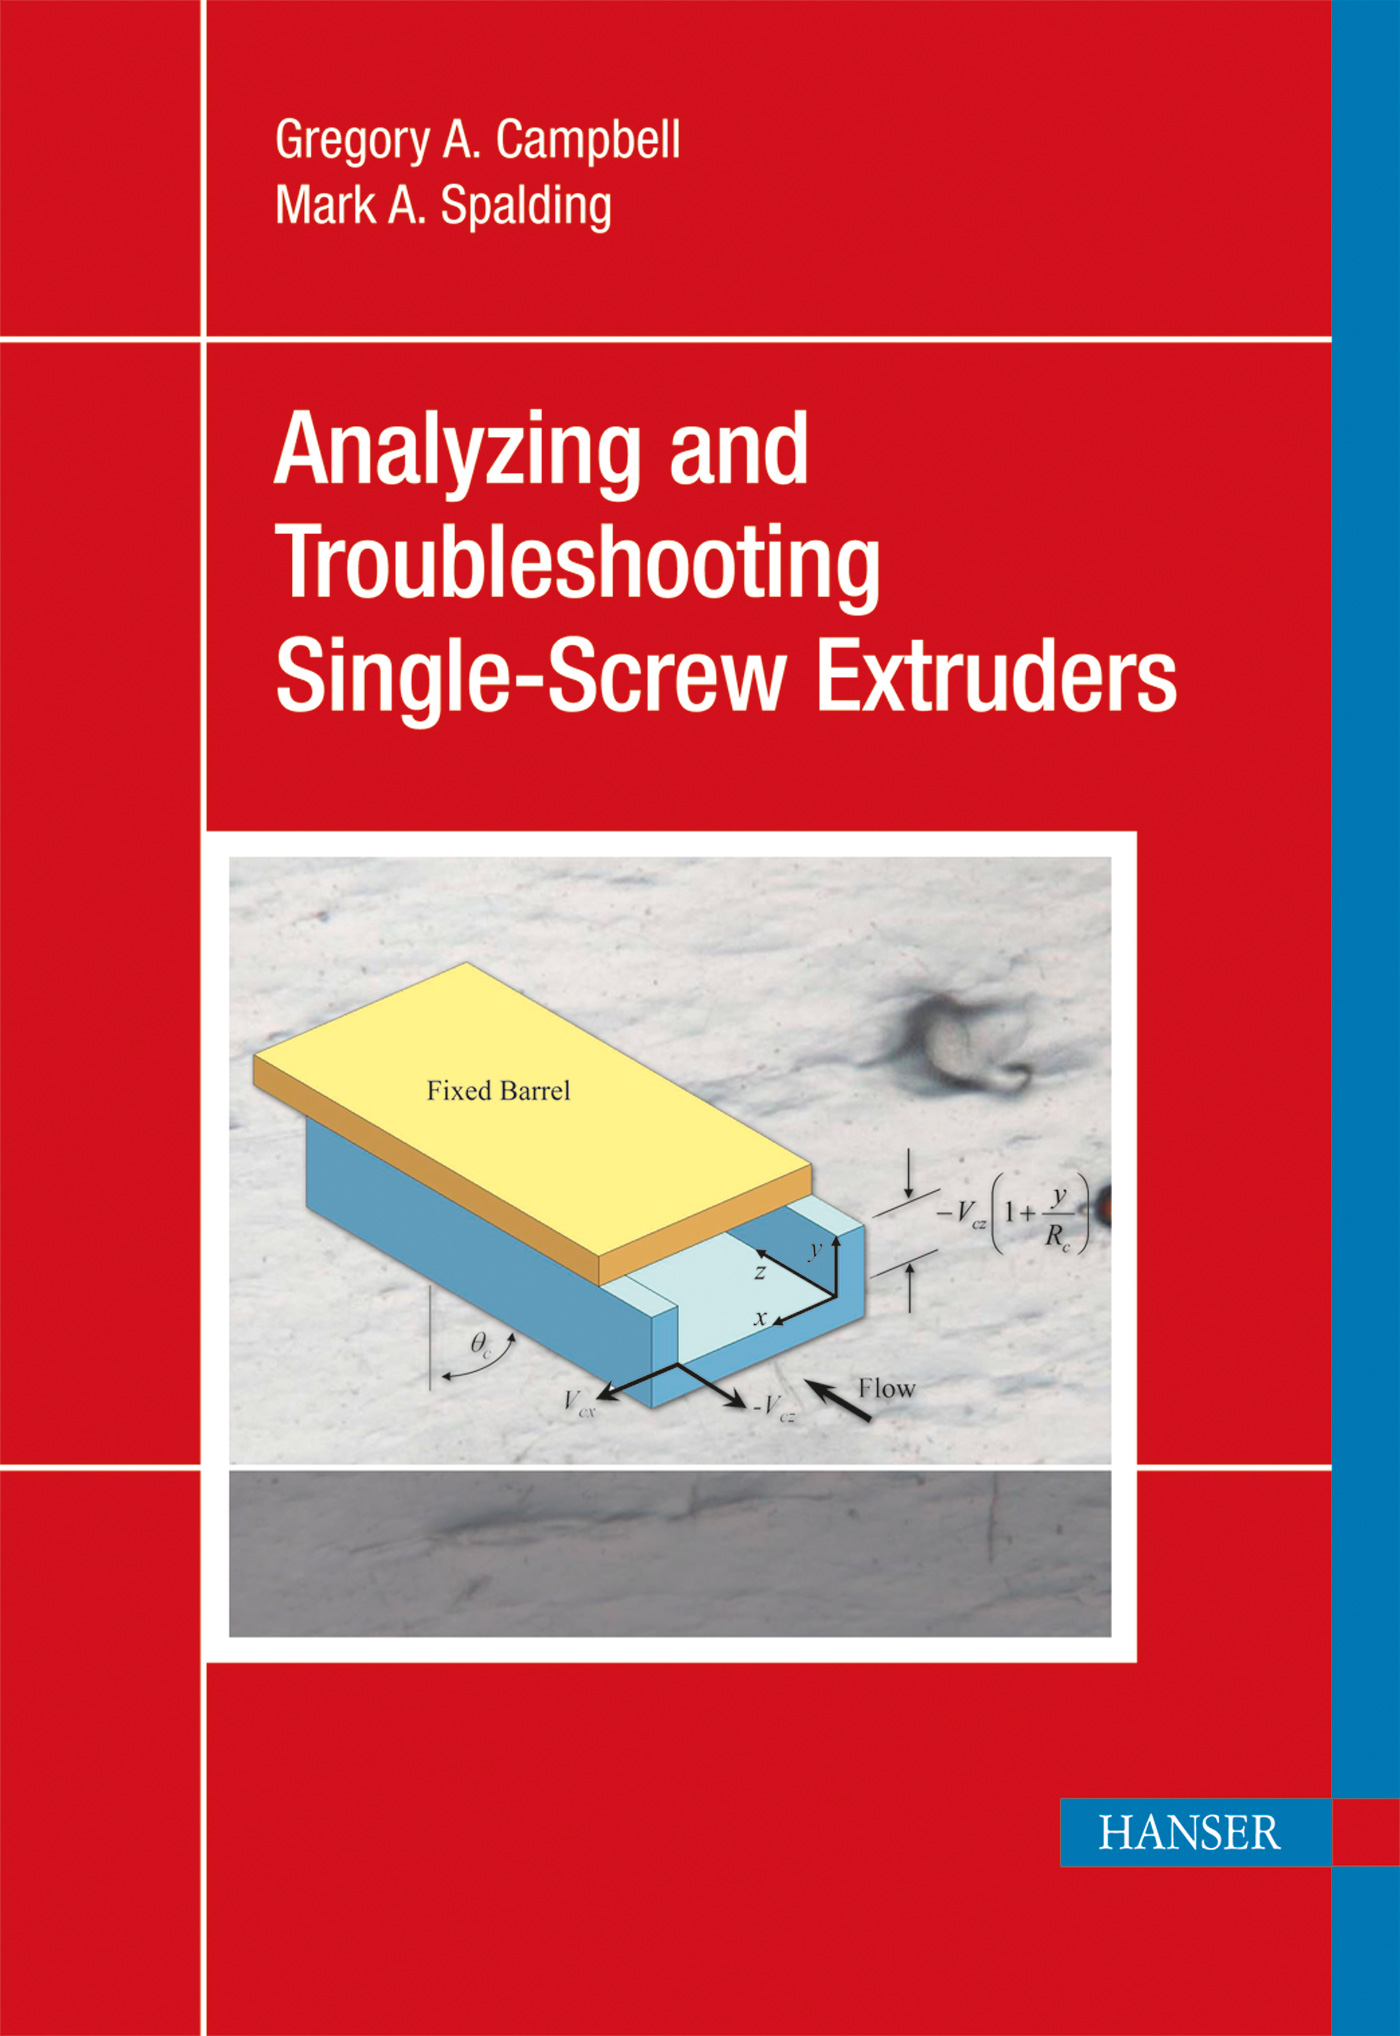 Campbell, Spalding, Analyzing and Troubleshooting Single-Screw Extruders, 978-3-446-41371-9